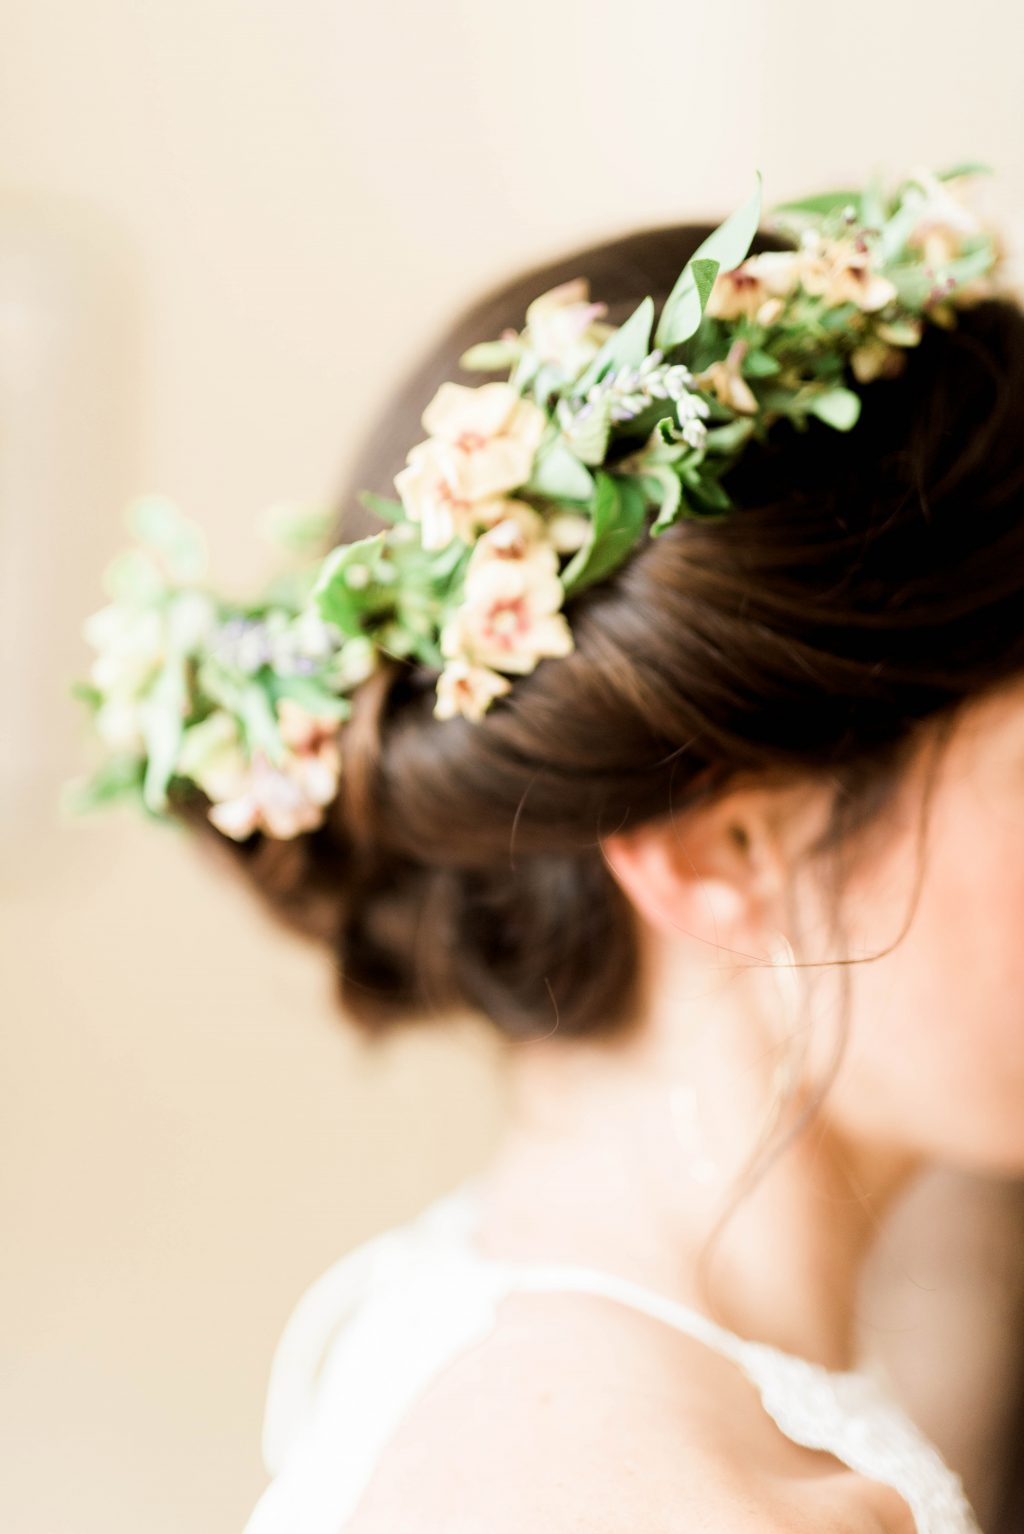 awbury-arboretum-wedding-DIY-boho-summer-haley-richter-photography-122